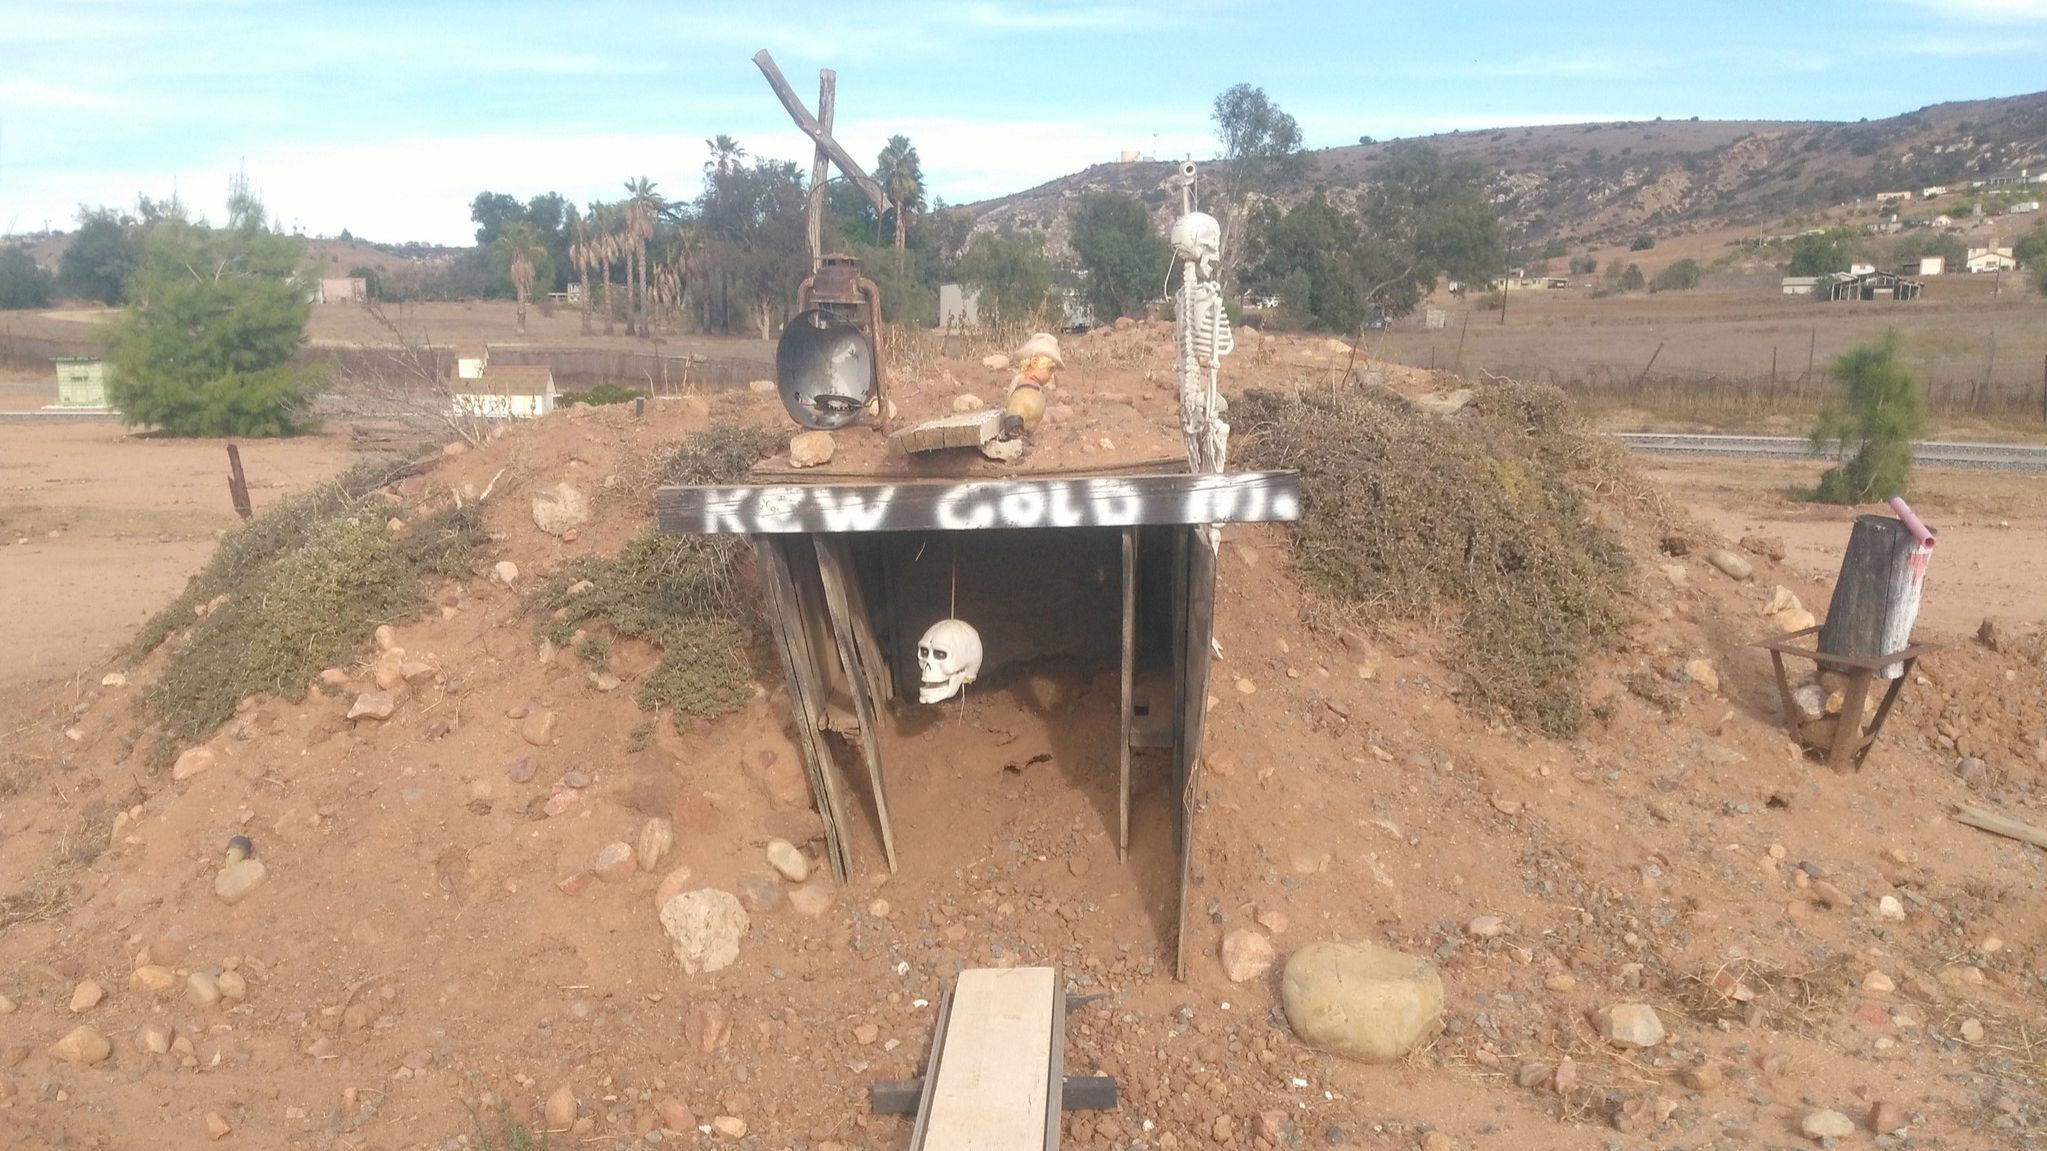 A squirrel makes its home in the miniature K&W Gold Mine named for Russell Green's grandsons Kaleb and Wyatt.